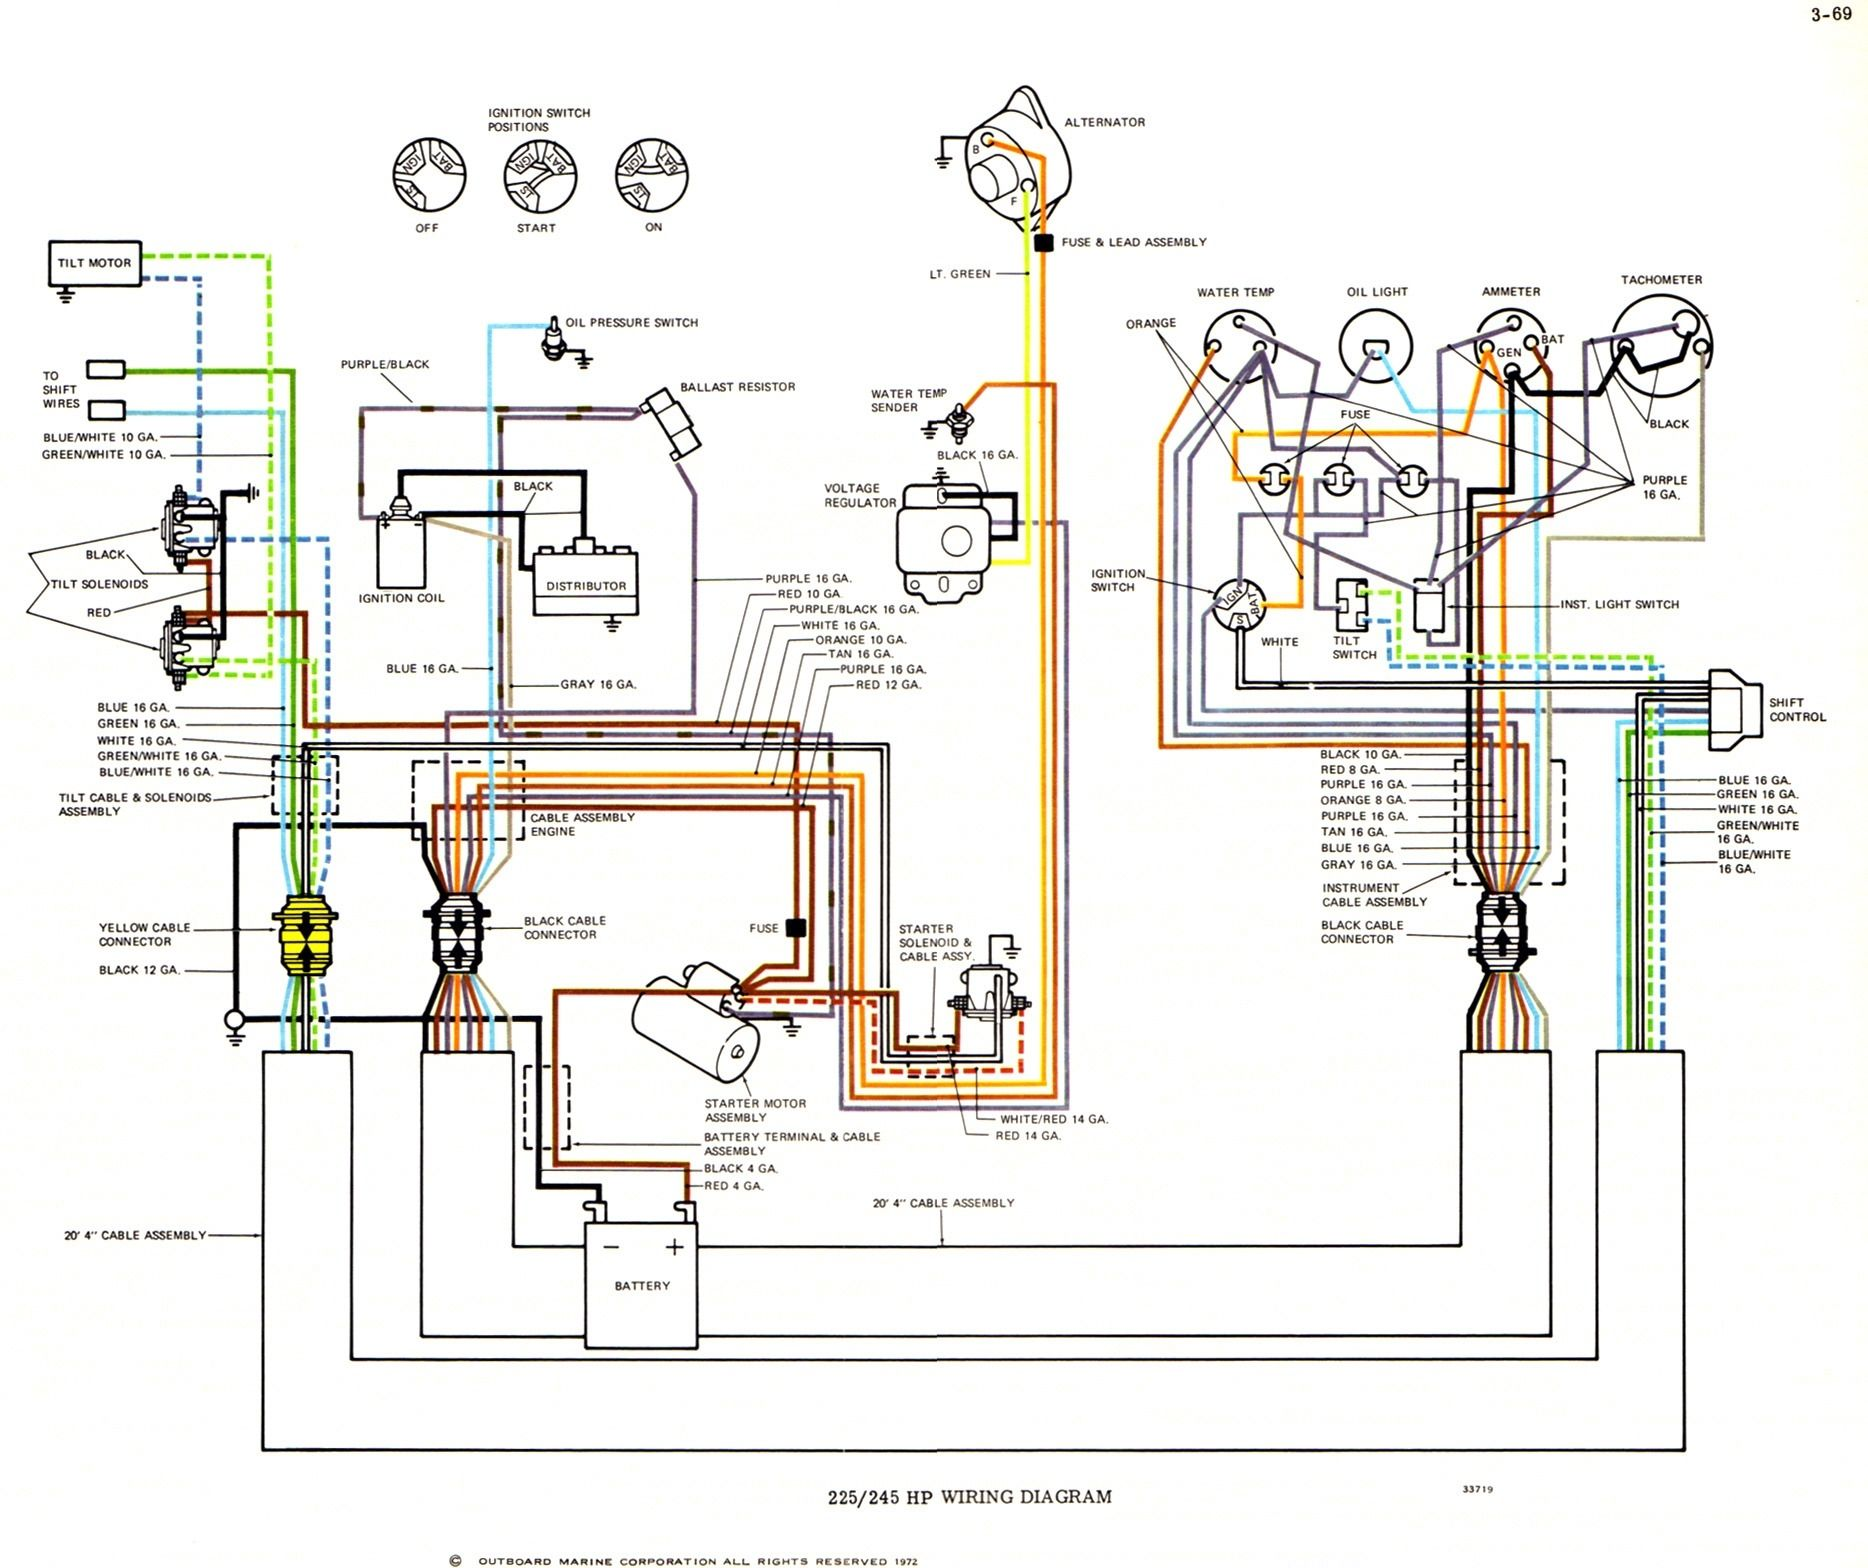 Yamaha Outboard Electrical Wiring Diagram With Images